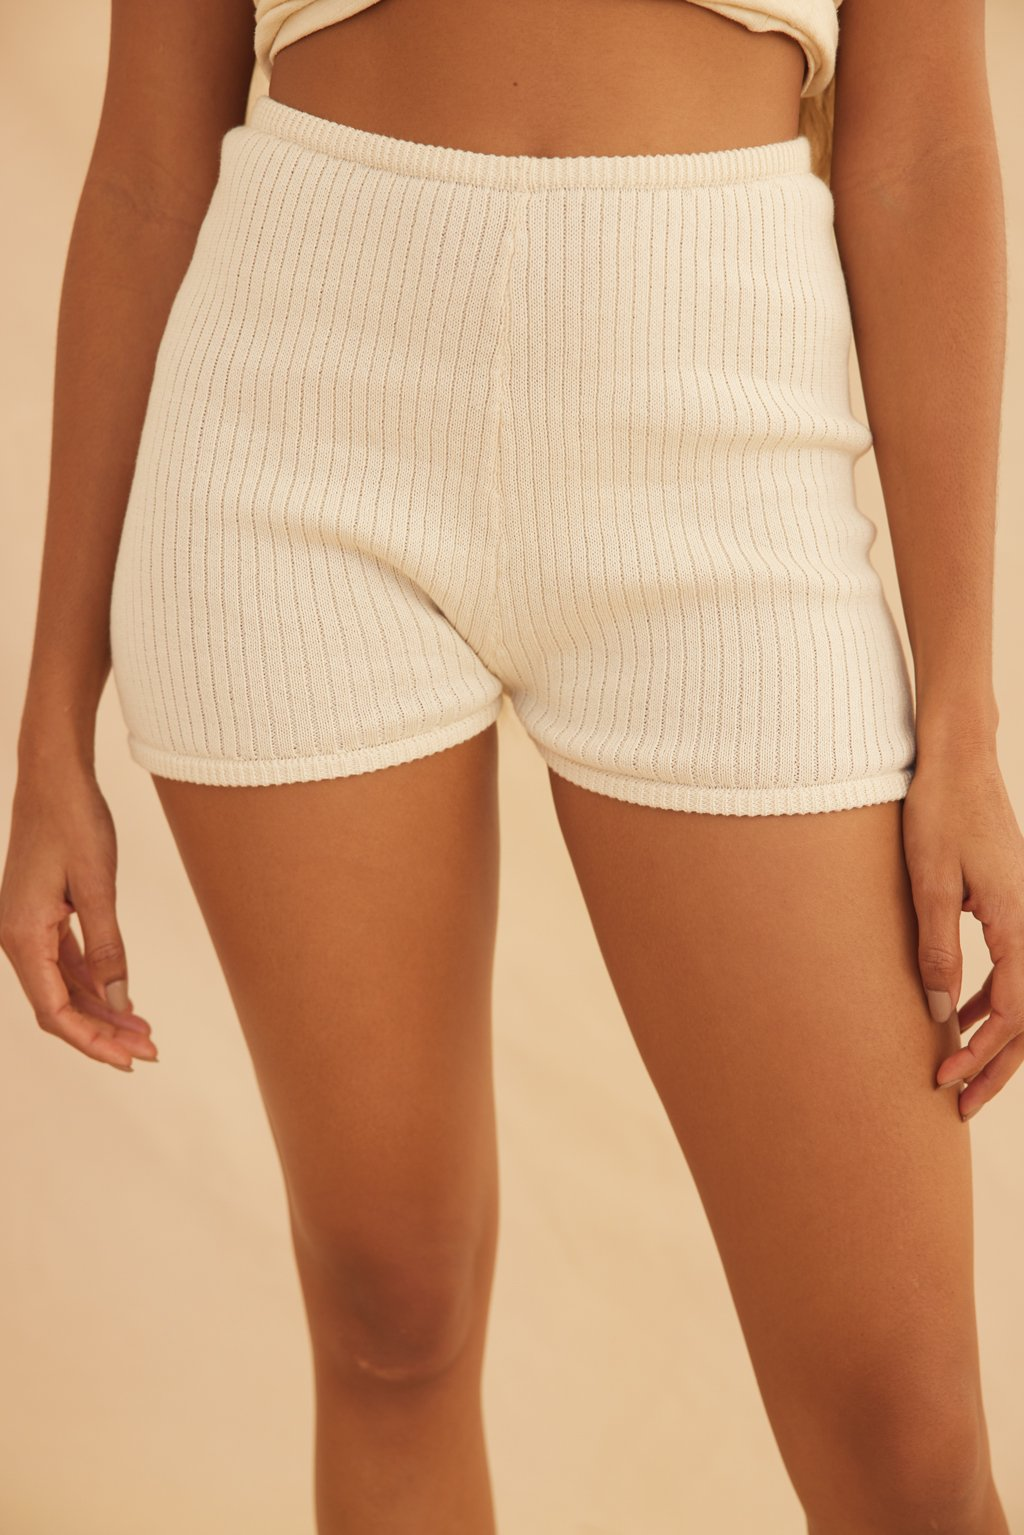 Organic Knit Ribbed Short - Cream by Savannah Morrow, available on savannahmorrow.com for $139 Elsa Hosk Shorts Exact Product